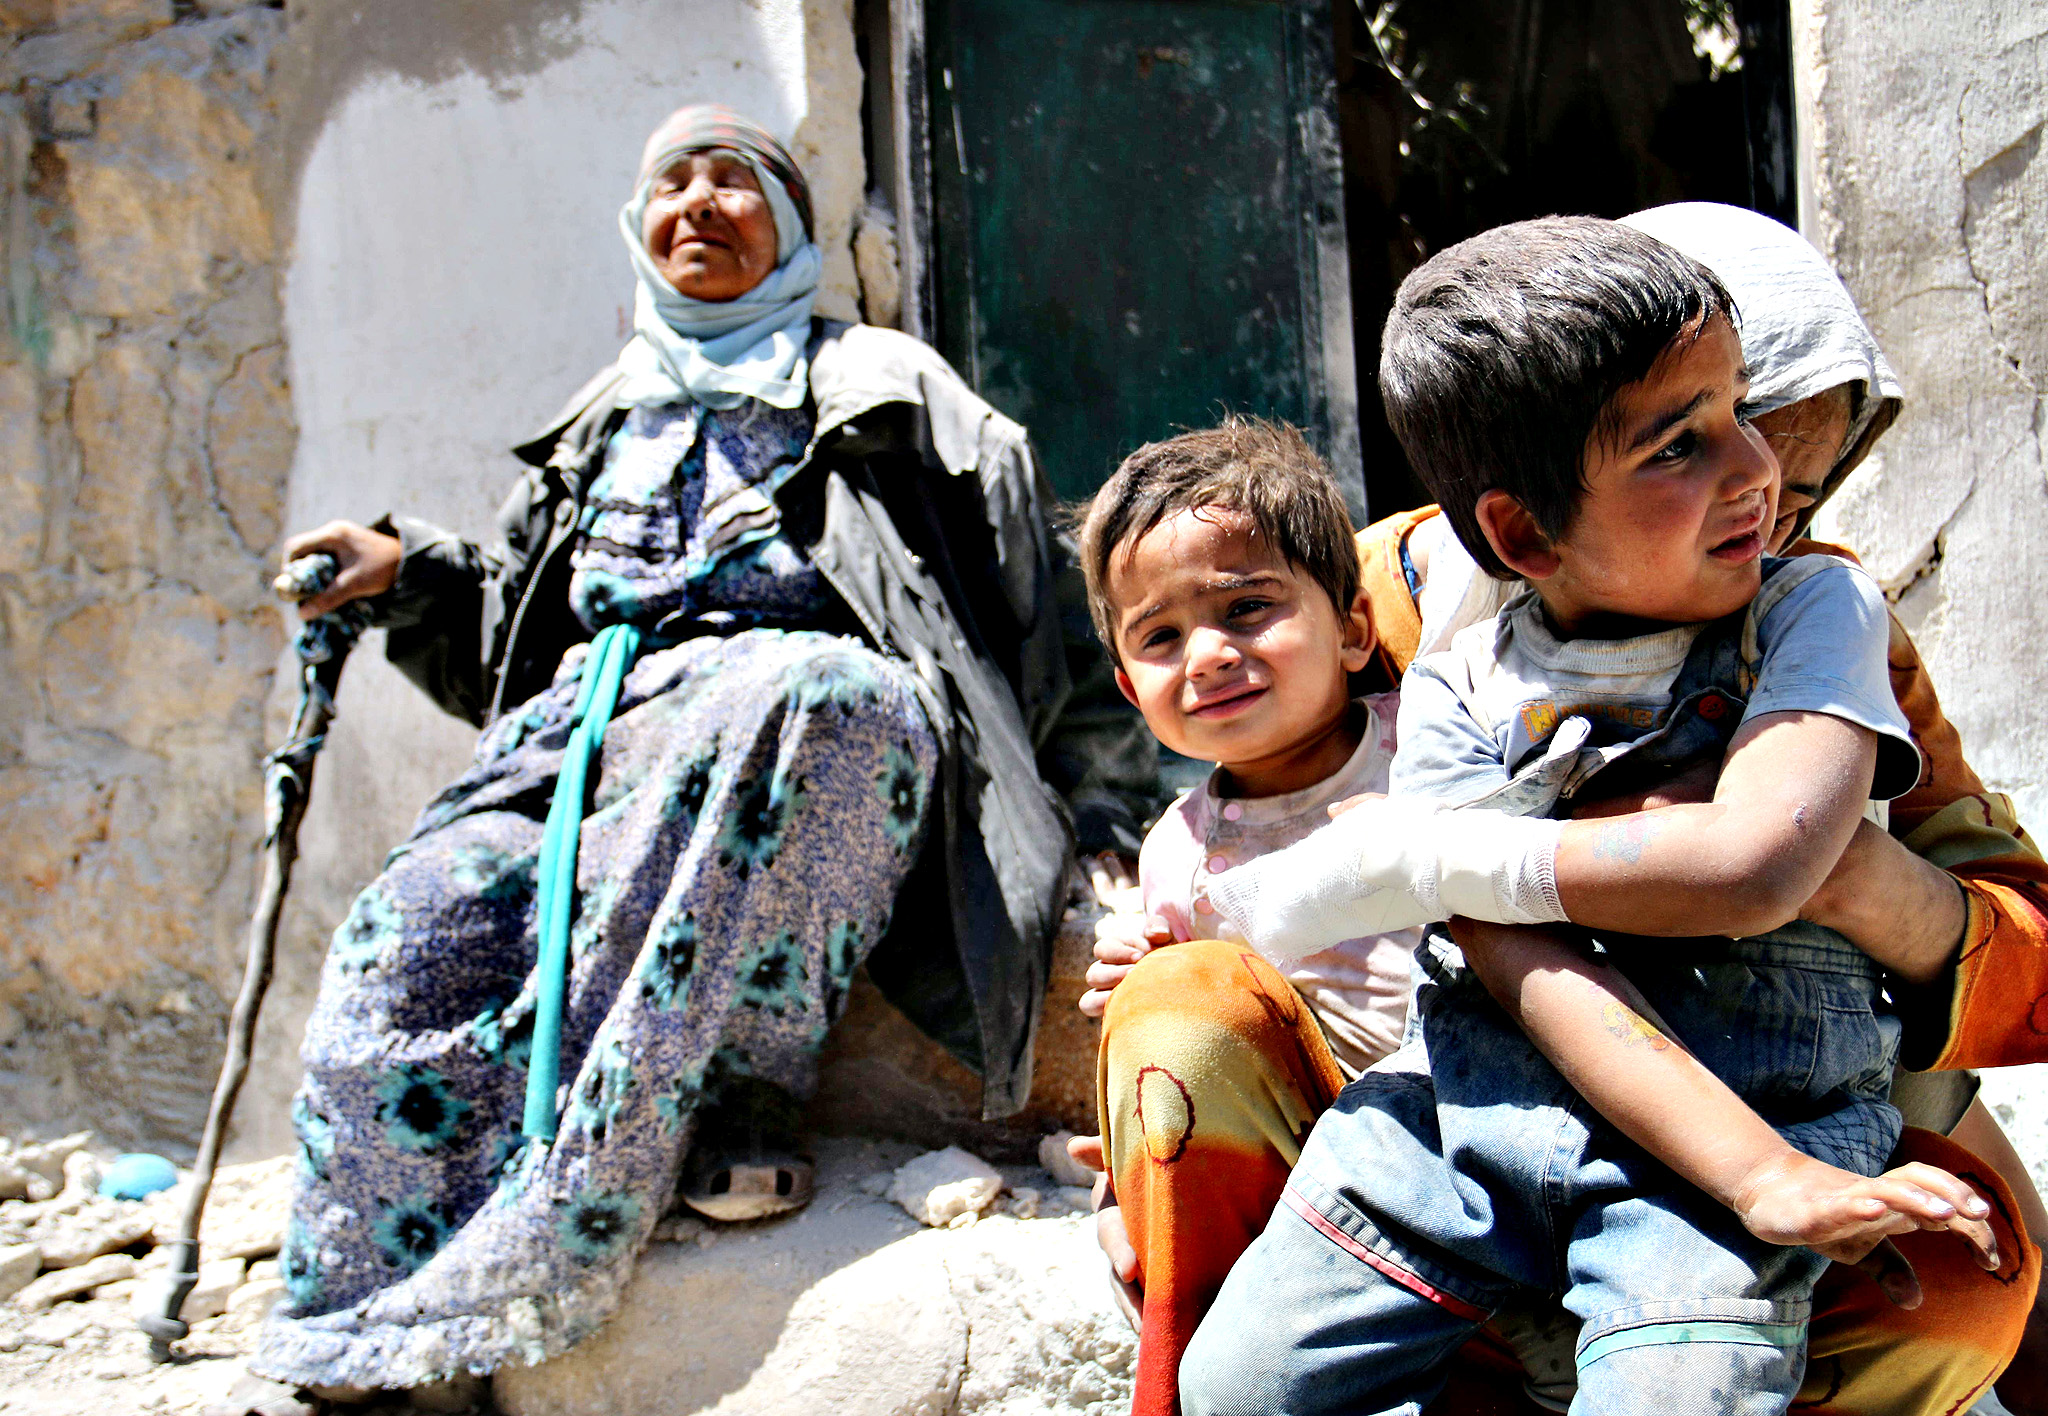 A Syrian woman comforts her children after their house in the Sahour nieghbourhood of the northern Syrian city of Aleppo was bombed on May 14, 2014. Once home to some 2.5 million residents and considered Syria's economic powerhouse, Aleppo has been divided between government and opposition control since shortly after fighting there began in mid-2012.